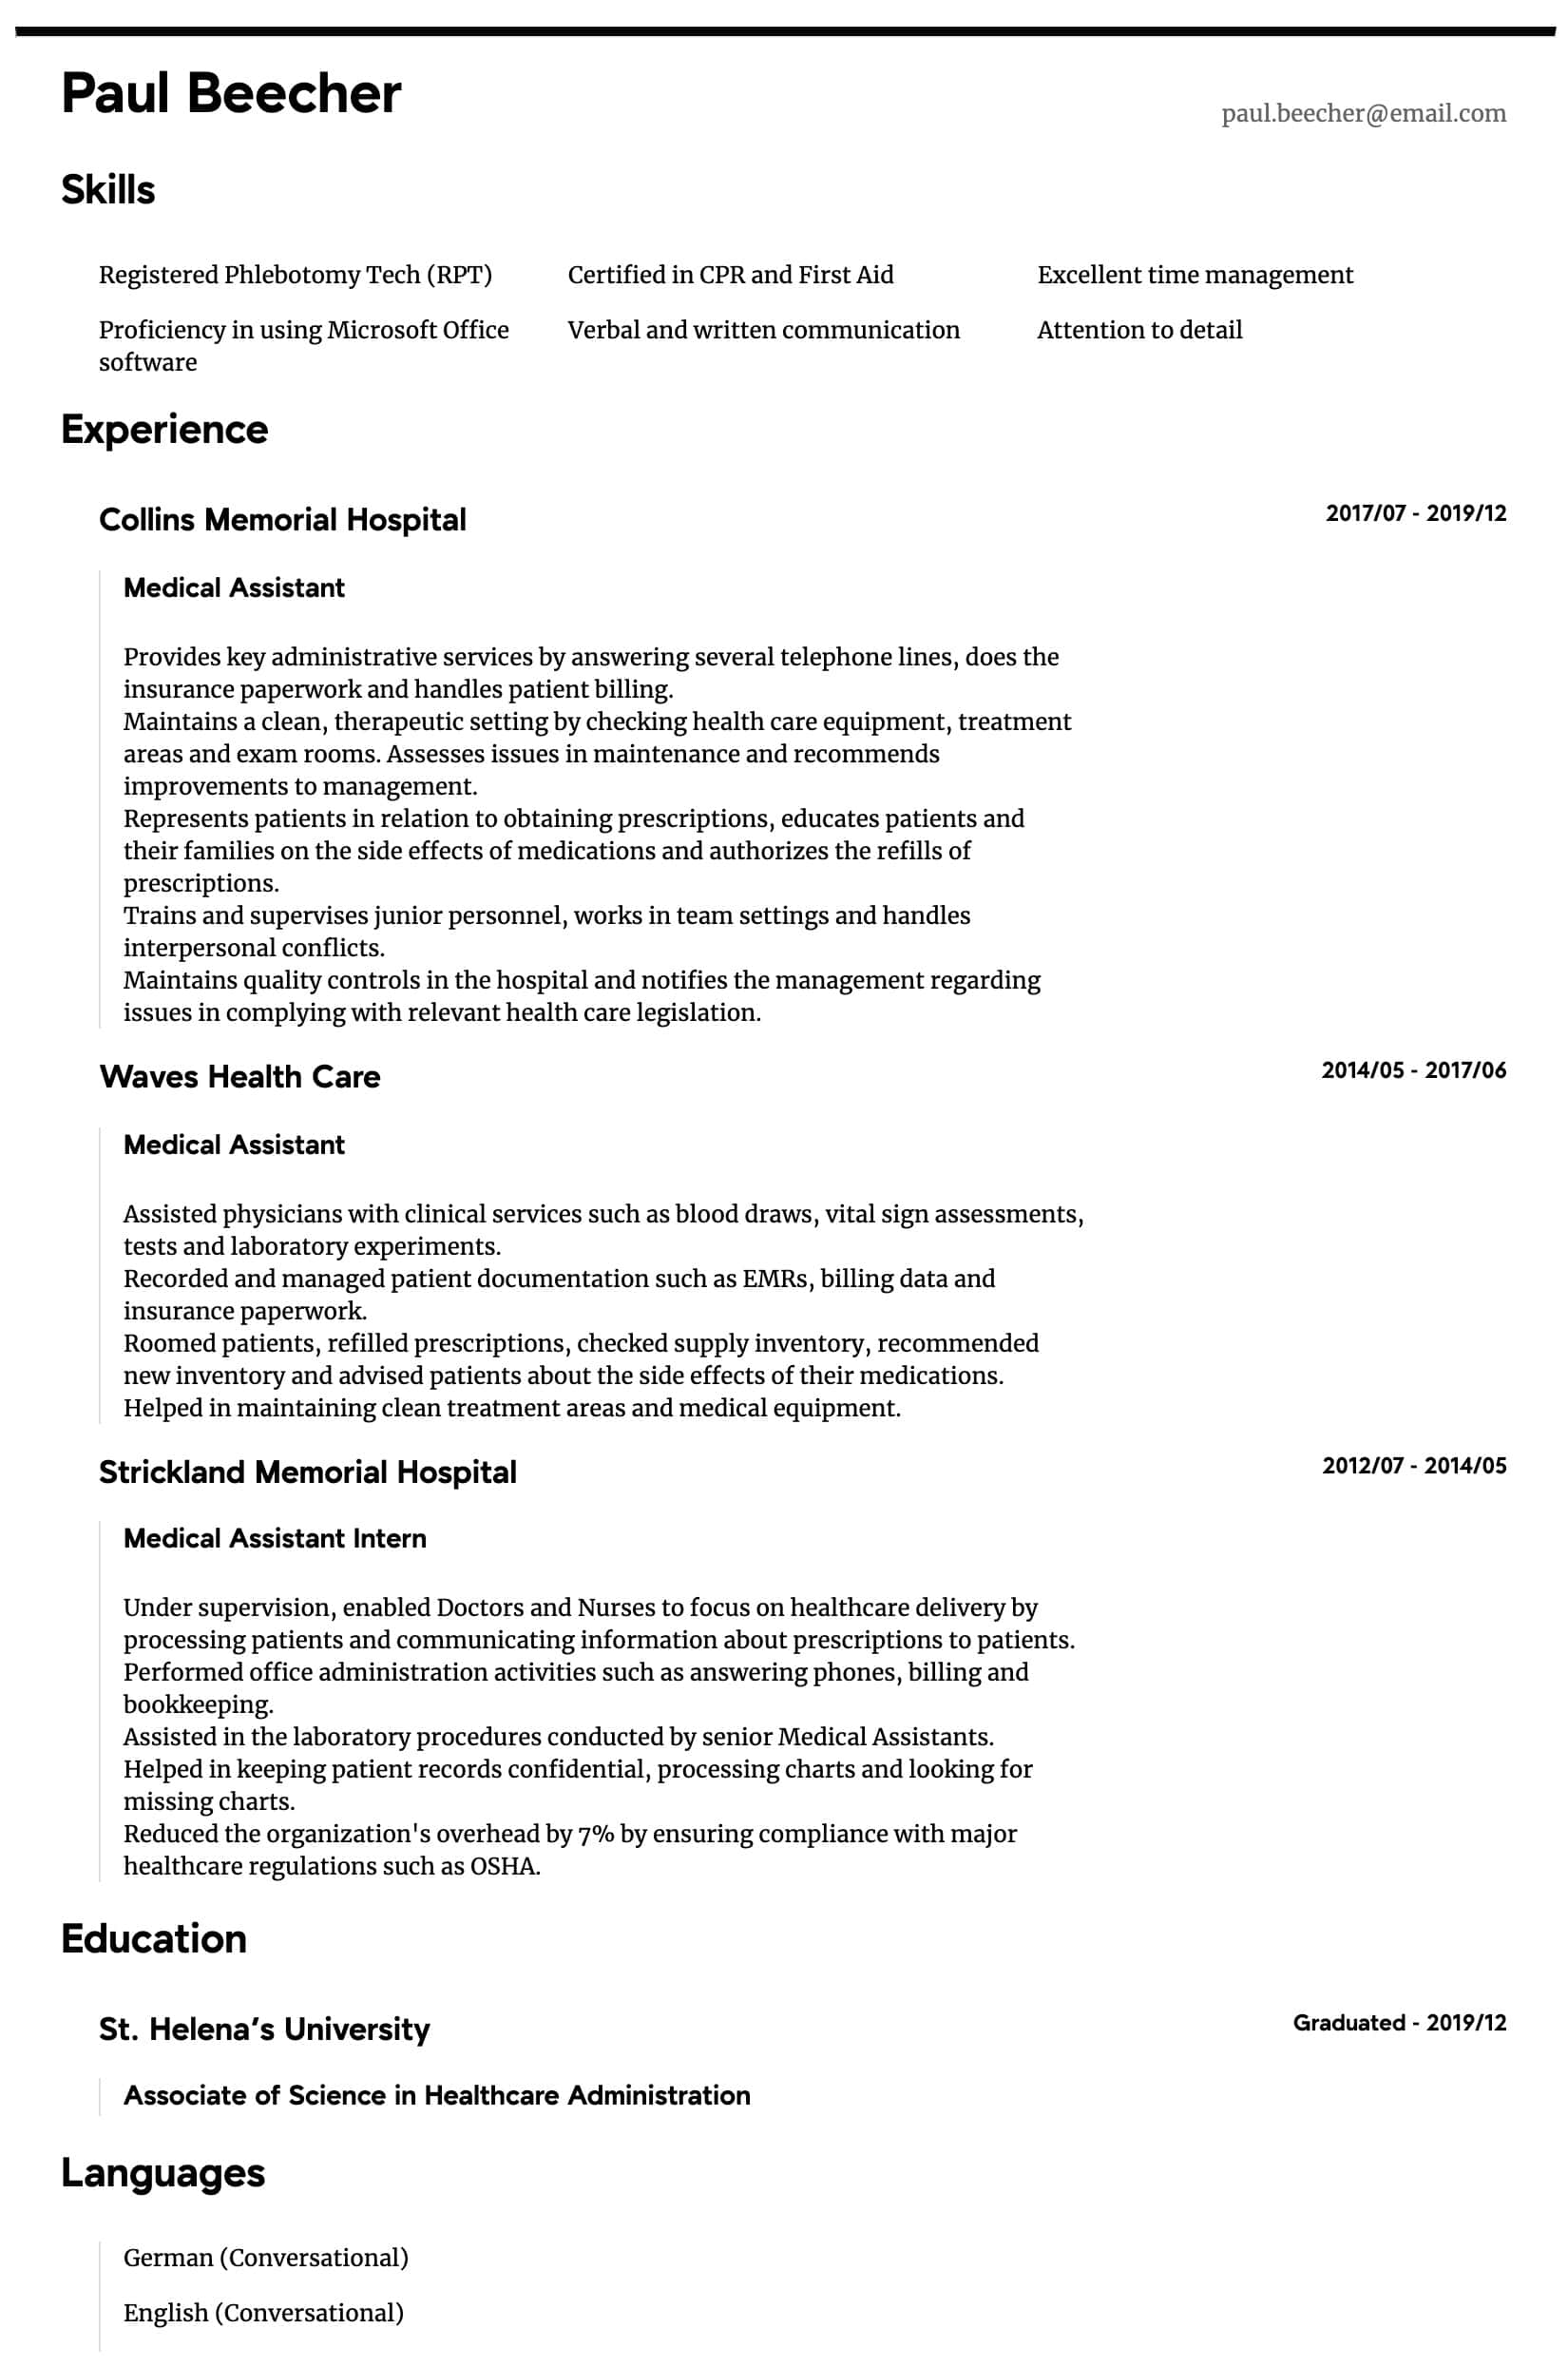 medical assistant resume samples all experience levels intermediate lying on Resume Medical Assistant Resume